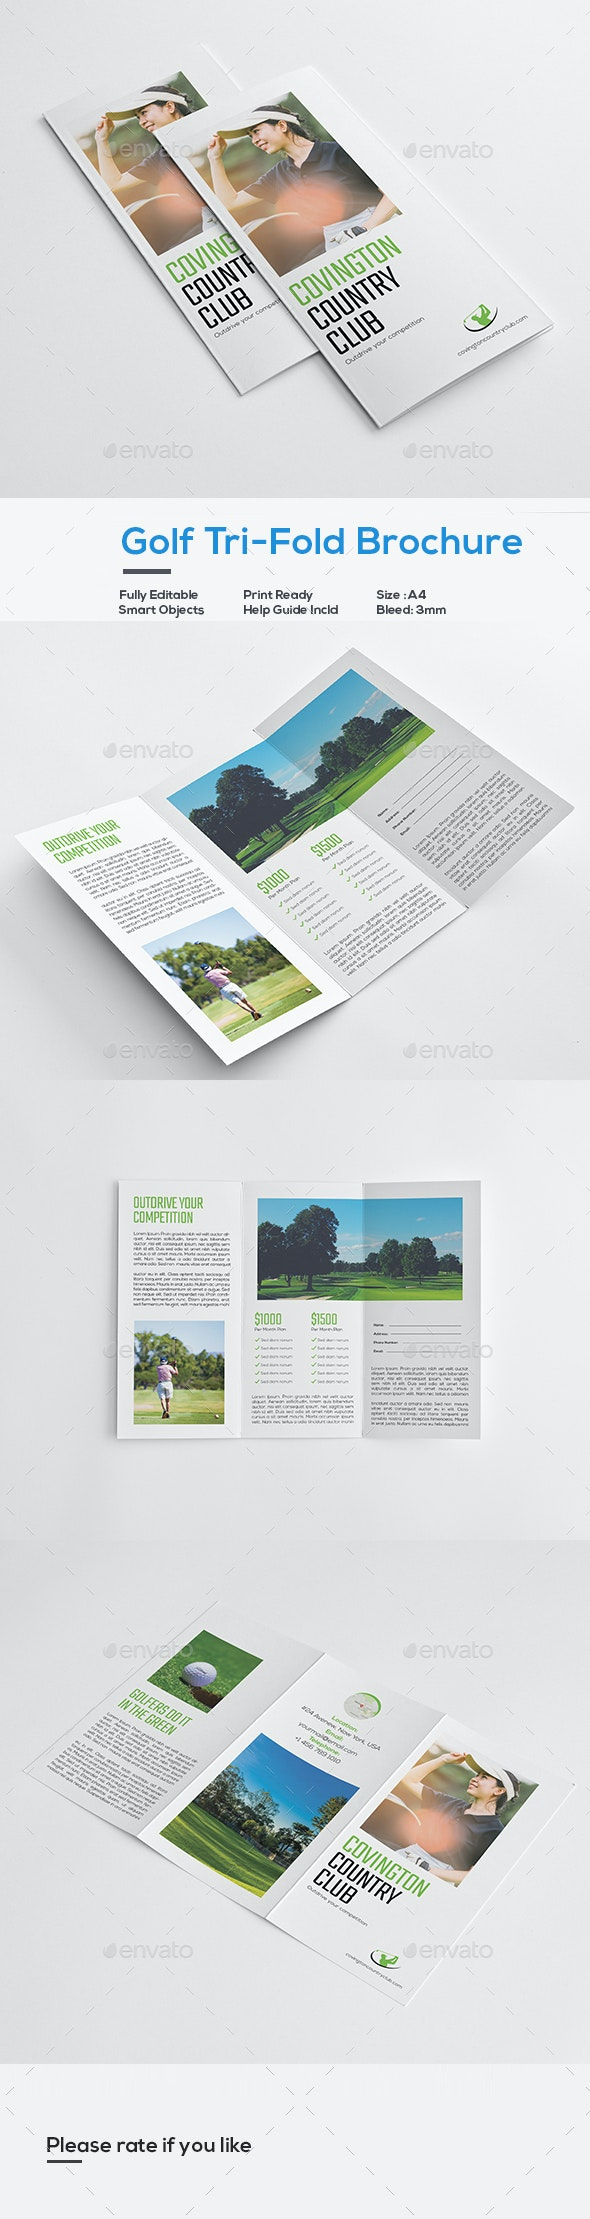 Golf Event Trifold Brochure - Corporate Brochures